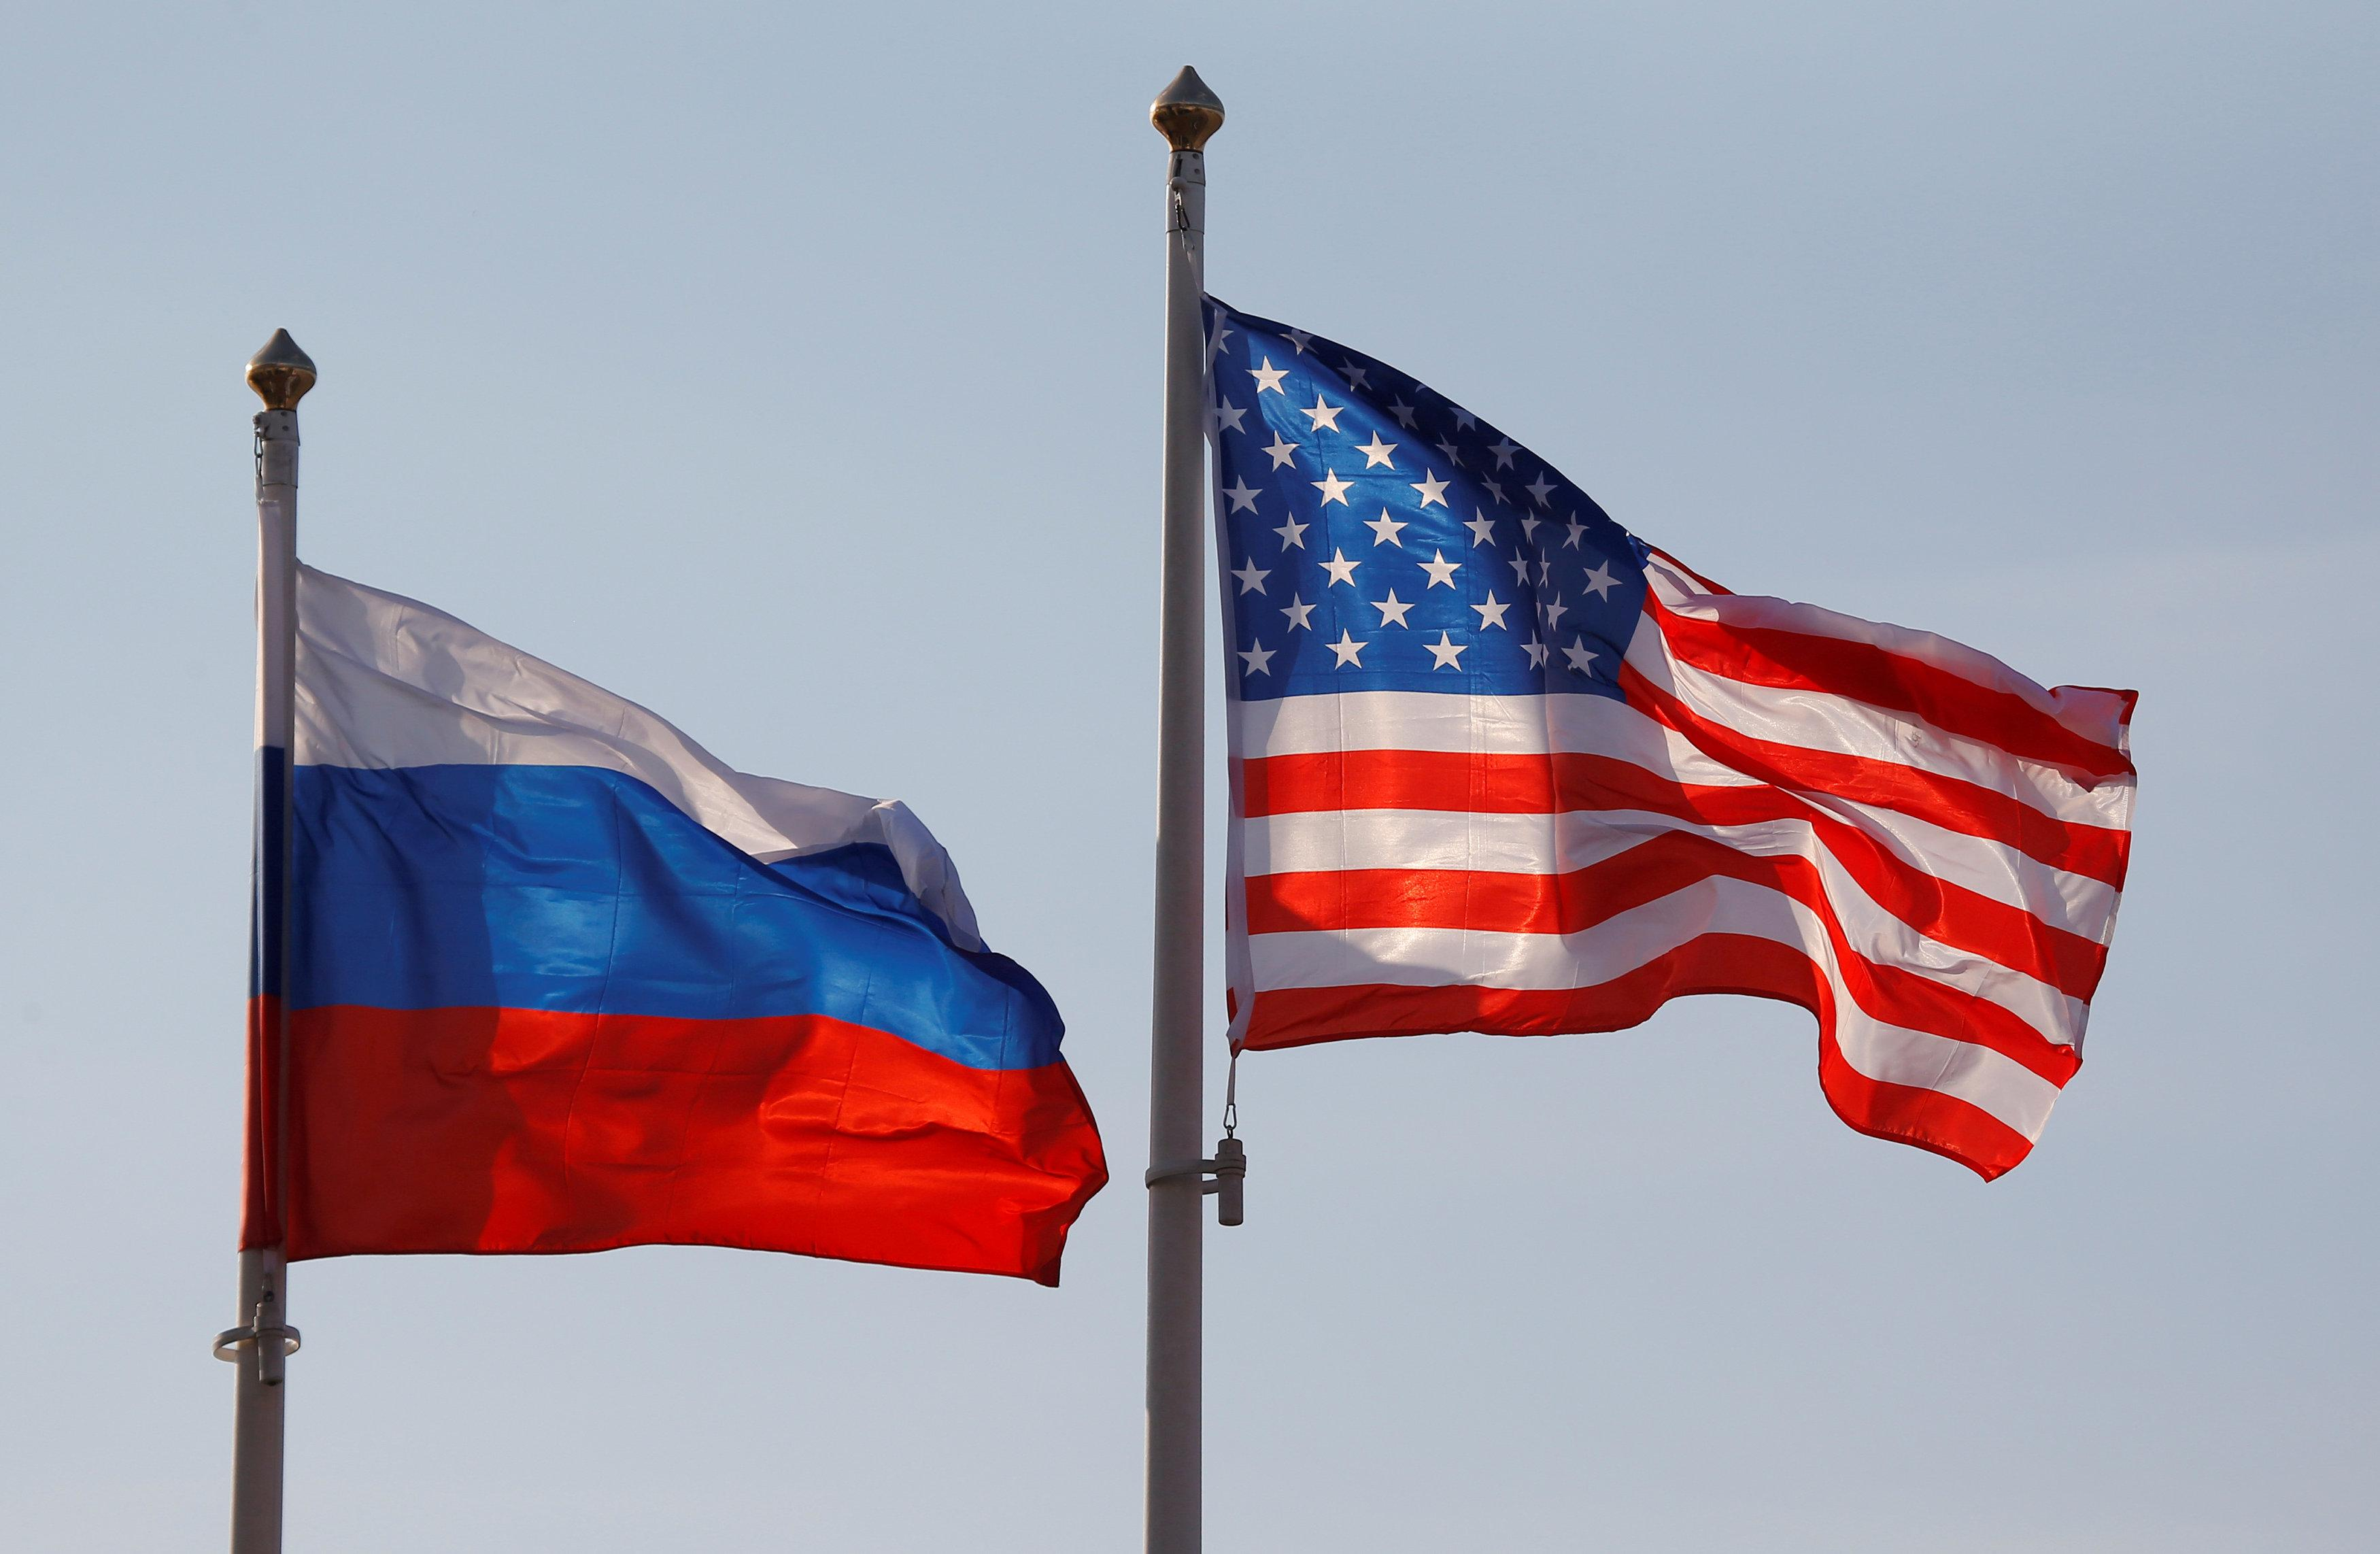 National flags of Russia and the U.S. fly at Vnukovo International Airport in Moscow, Russia April 11, 2017. Maxim Shemetov